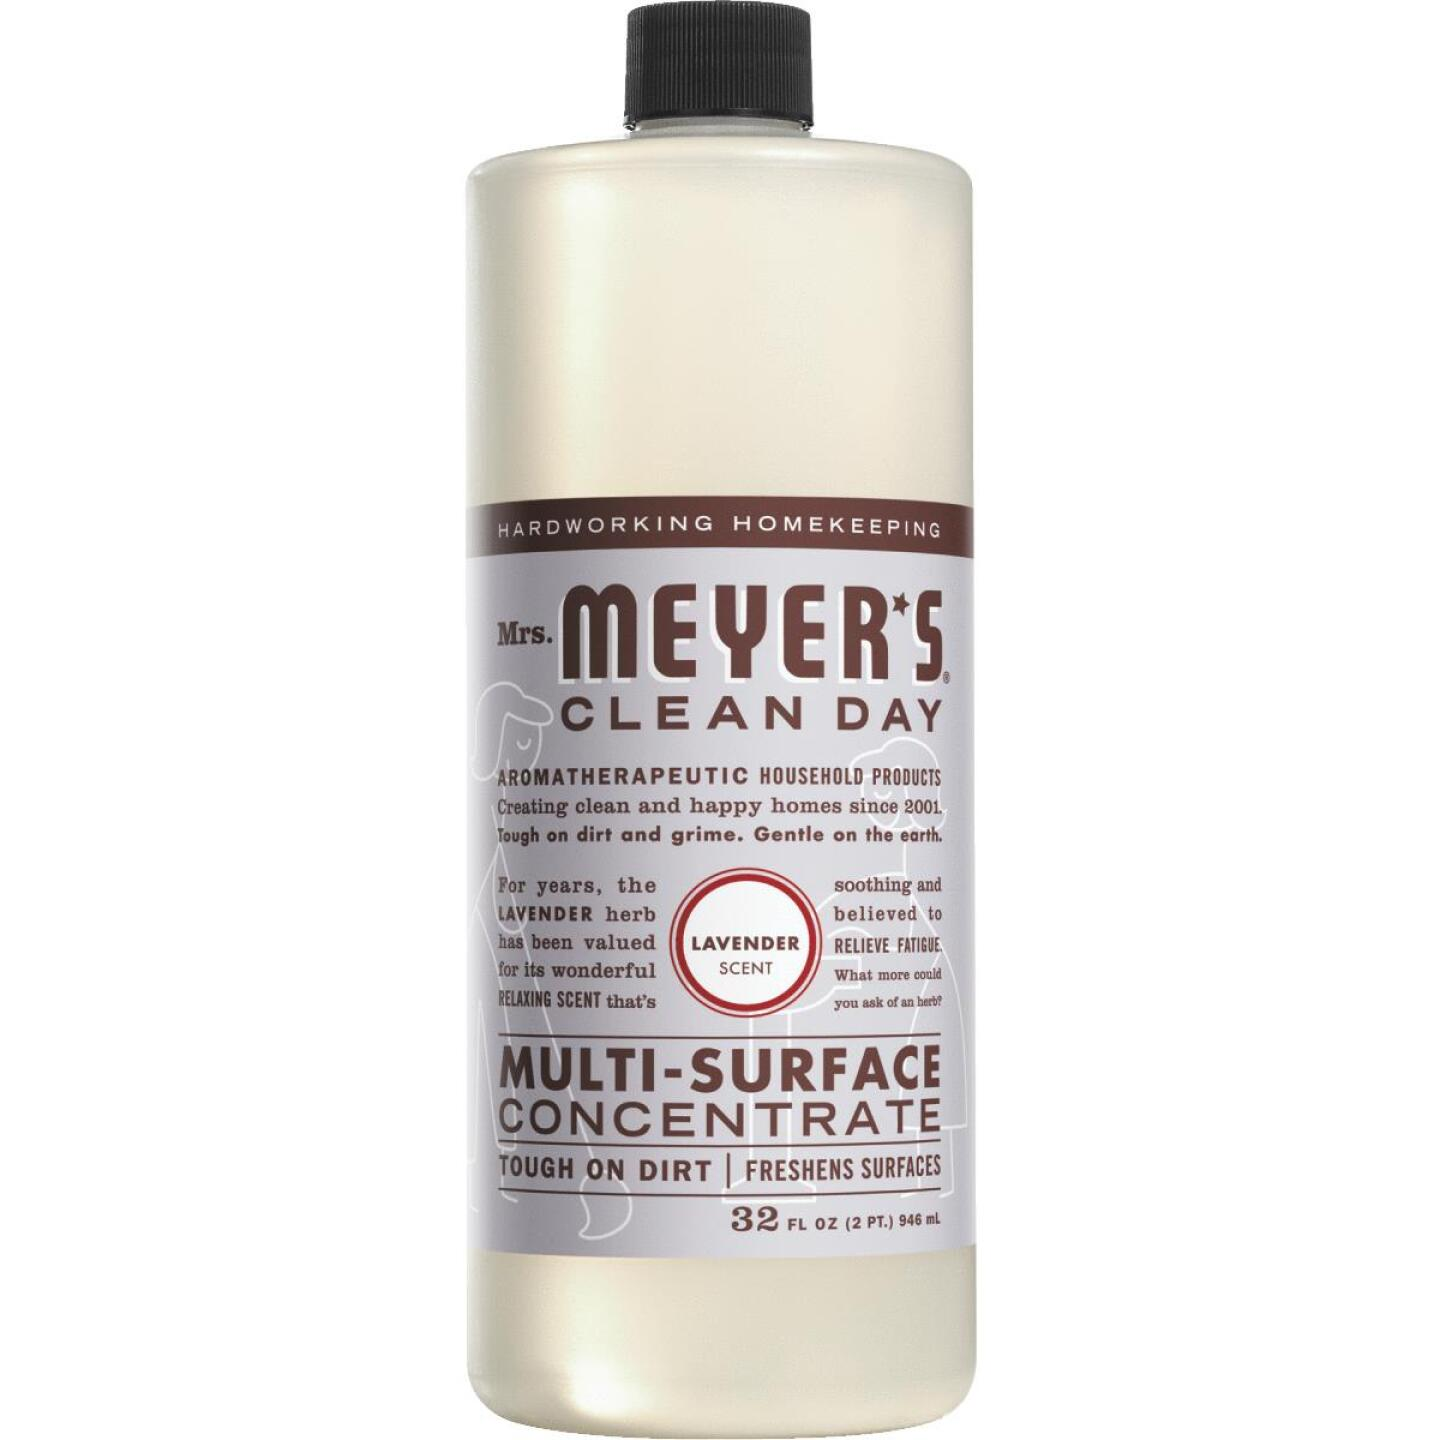 Mrs. Meyer's Clean Day 32 Oz. Lavender Multi-Surface Concentrate Image 1